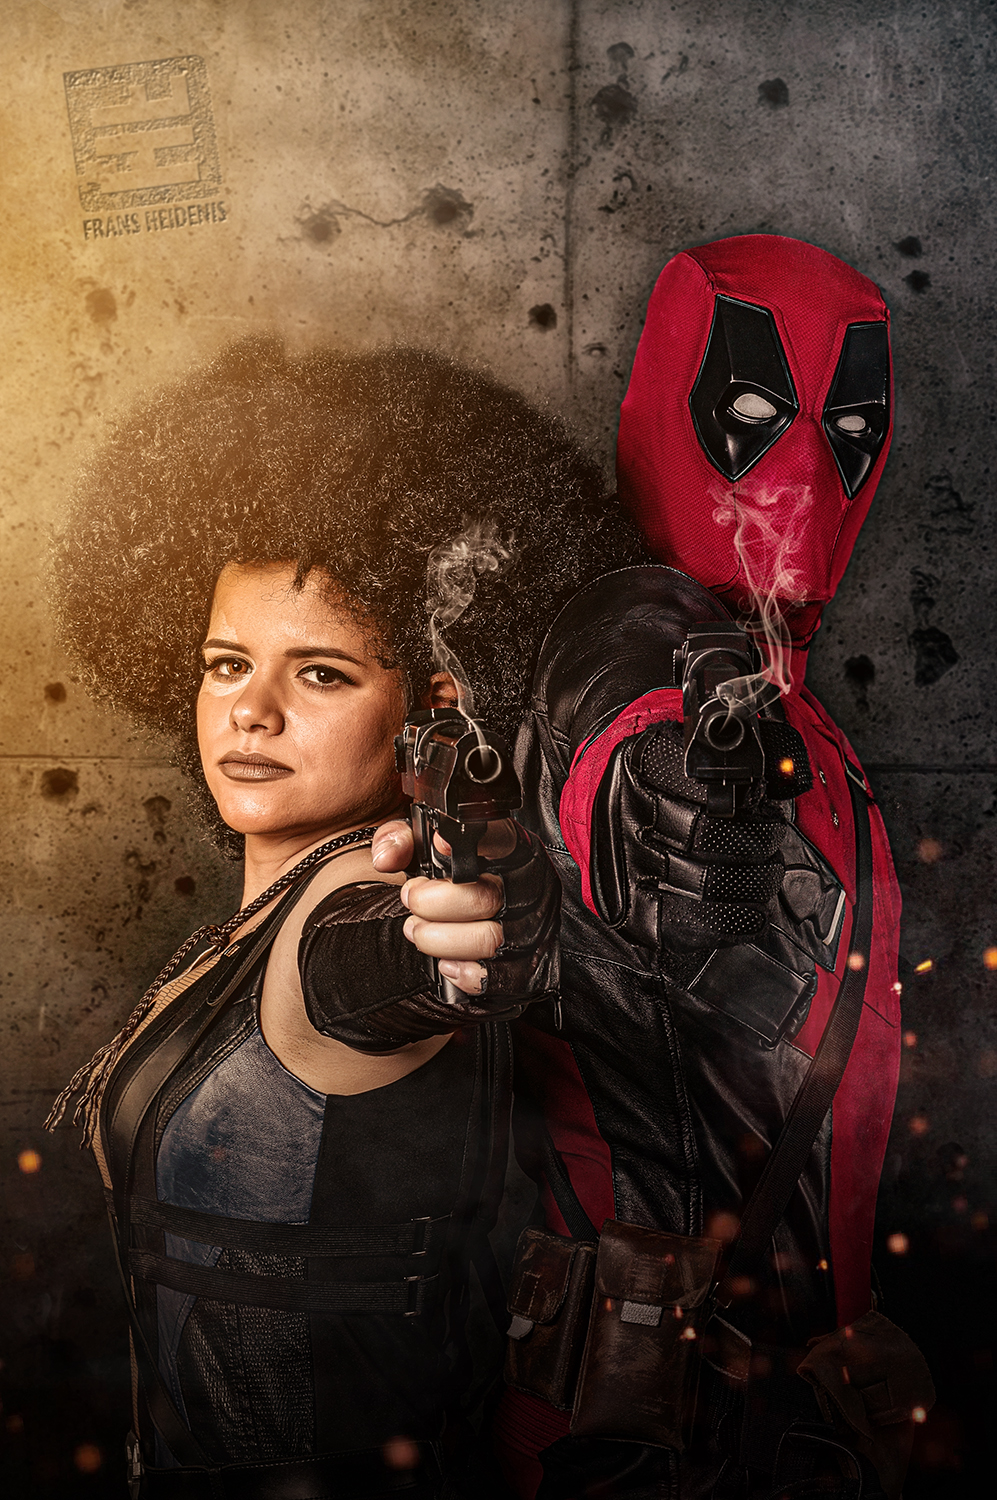 Cosplayers van en uit de film Deadpool 2